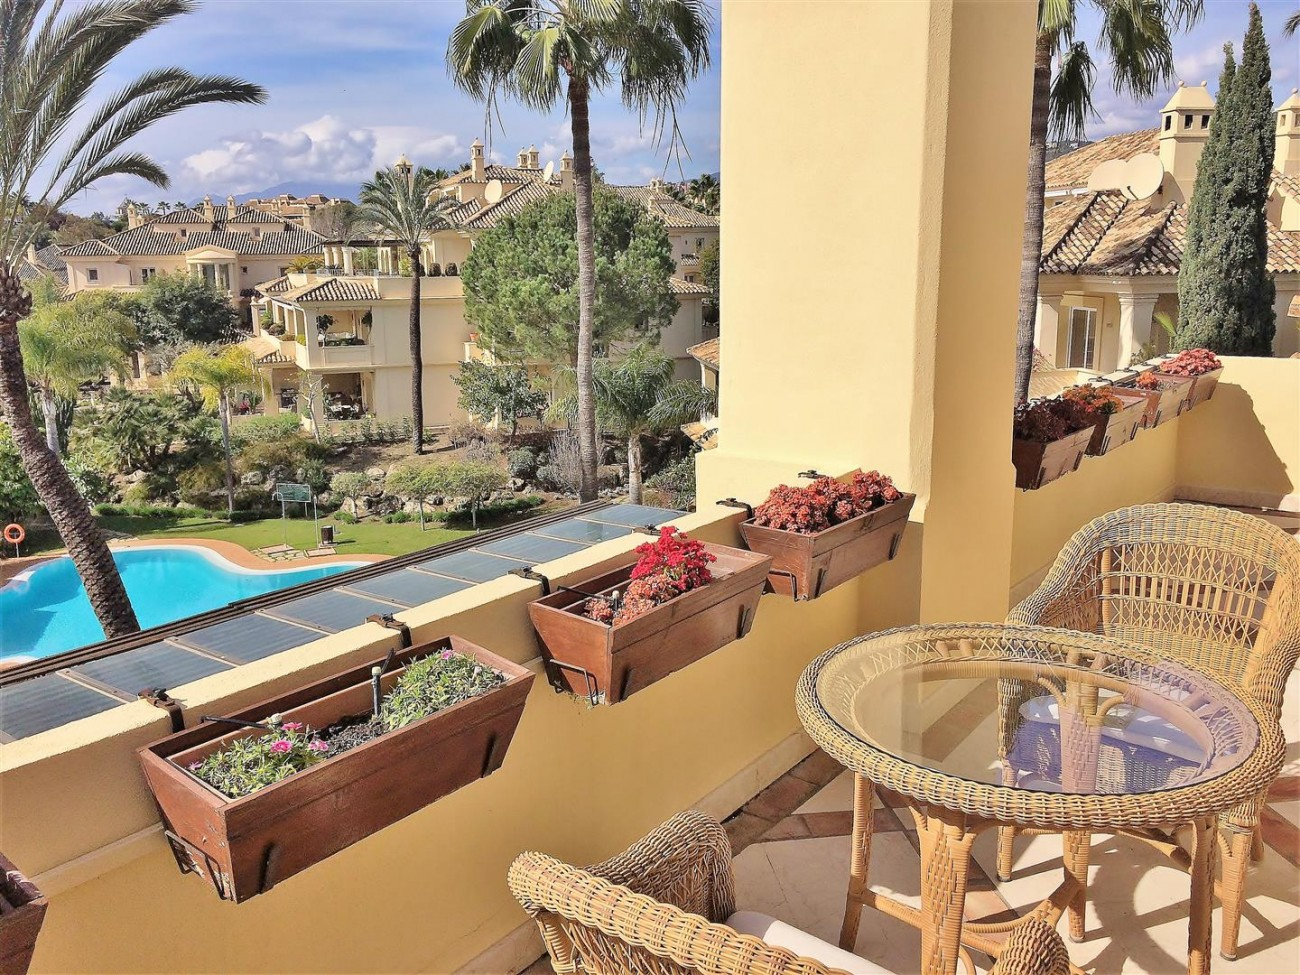 Penthouse for sale Las Alamandas Nueva Andalucia Marbella Spain (30) (Large)